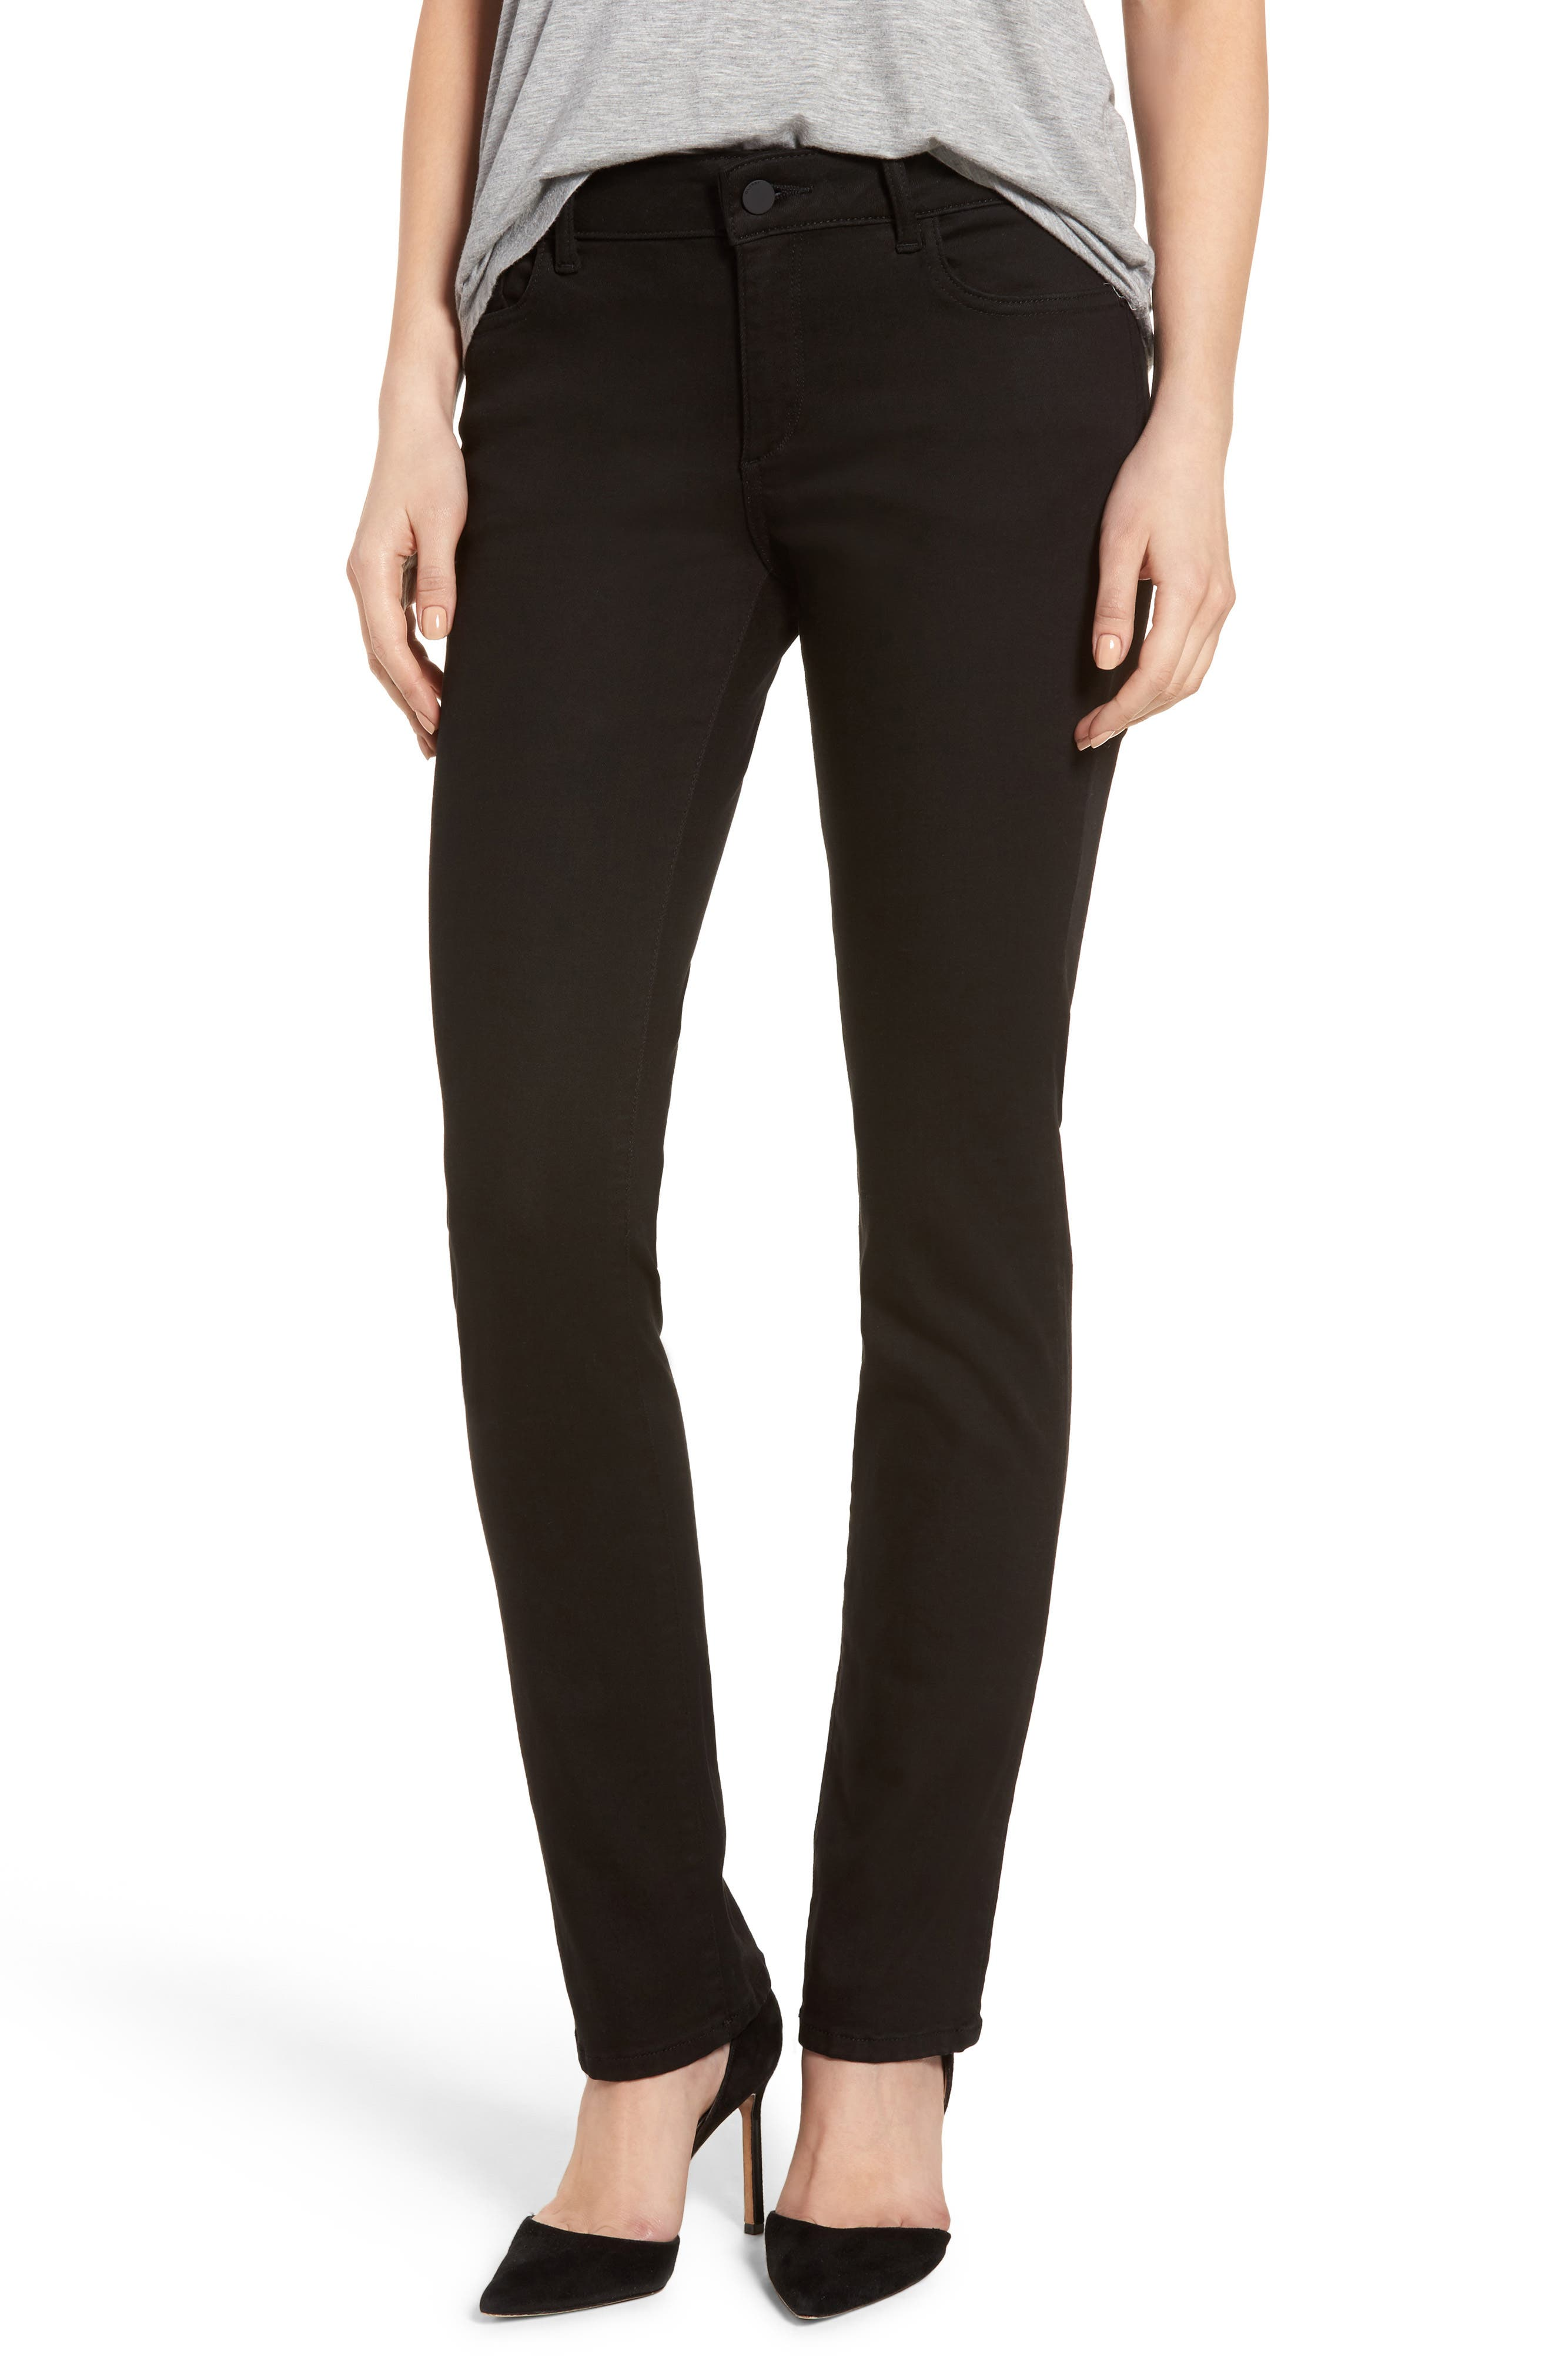 Alternate Image 1 Selected - DL1961 Coco Curvy Straight Leg Jeans (Hail)